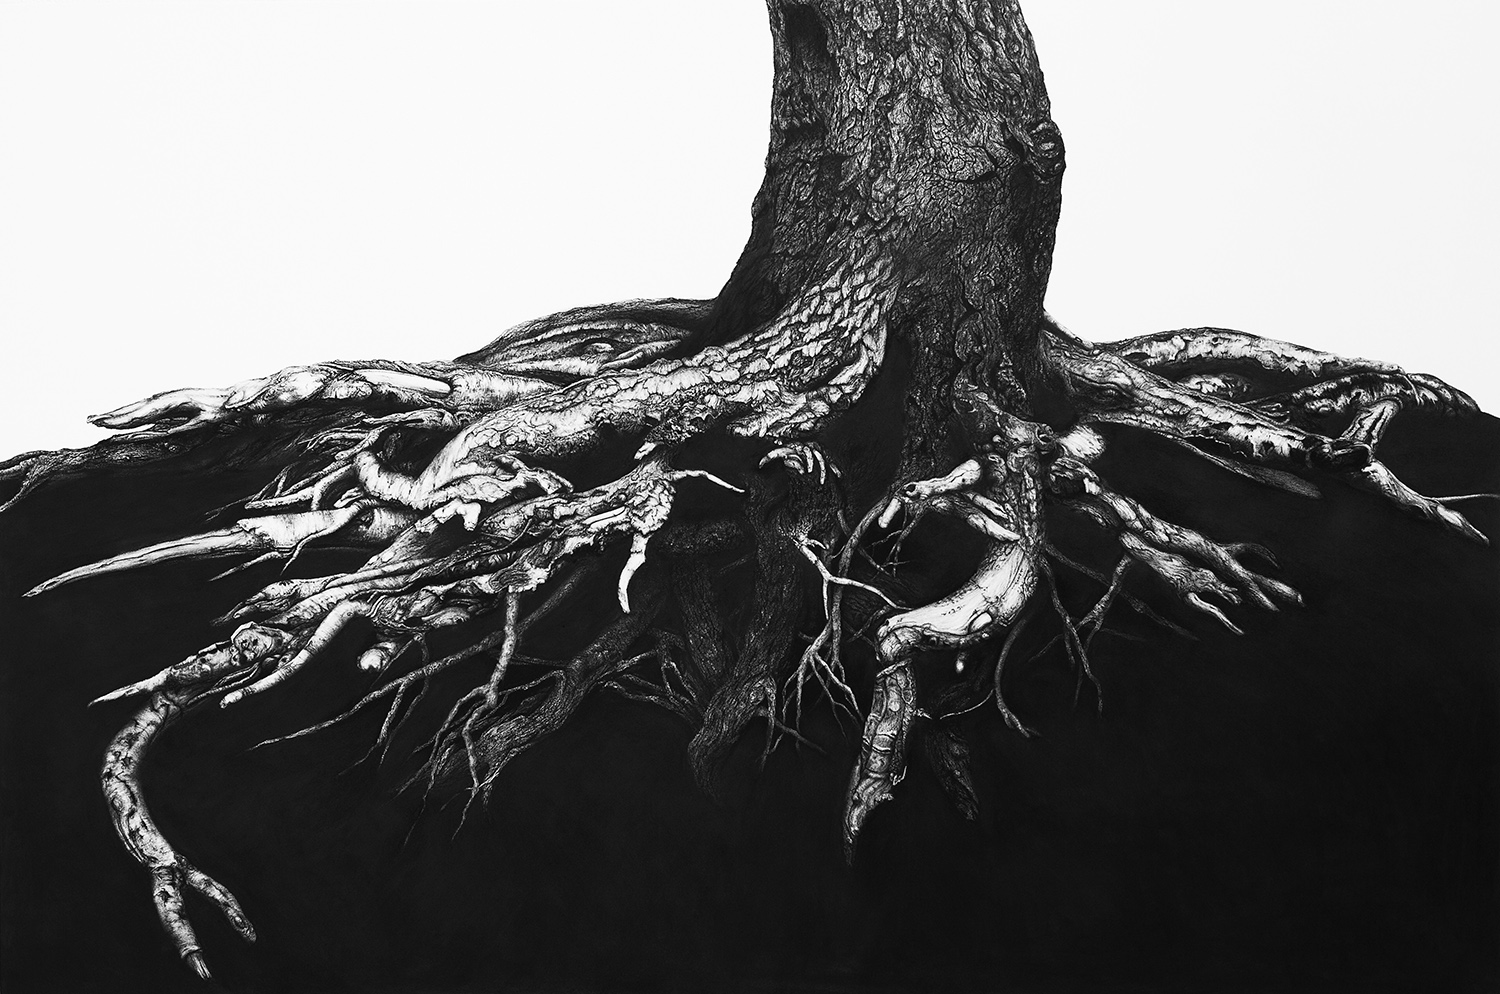 Wimbledon Common  -  100cm x 150cm - Charcoal & Conte, paper mounted on wood - 2014